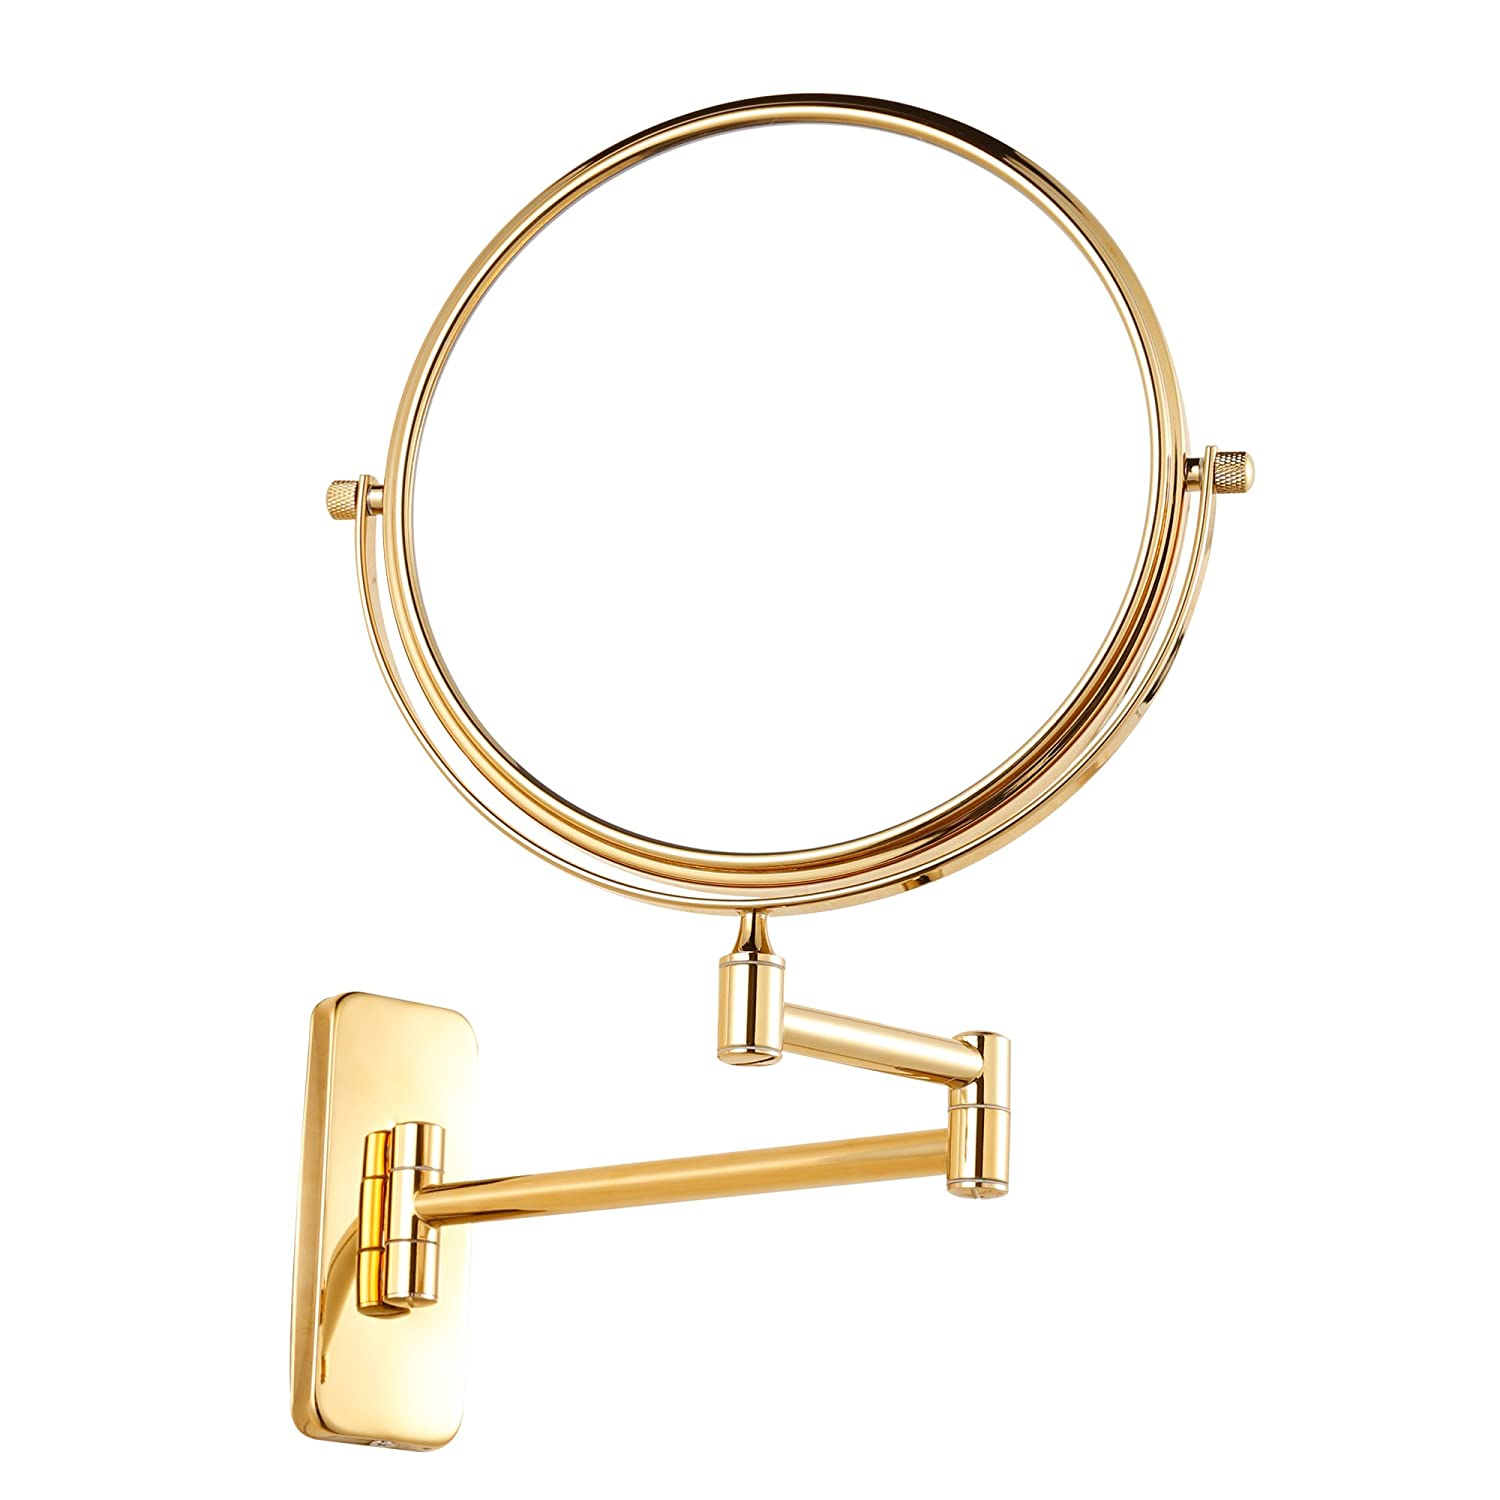 GURUN 8-Inch Double-Sided Wall Mounted Makeup Mirror with 10x Magnification,Gold Finish M1406J 8in,10x